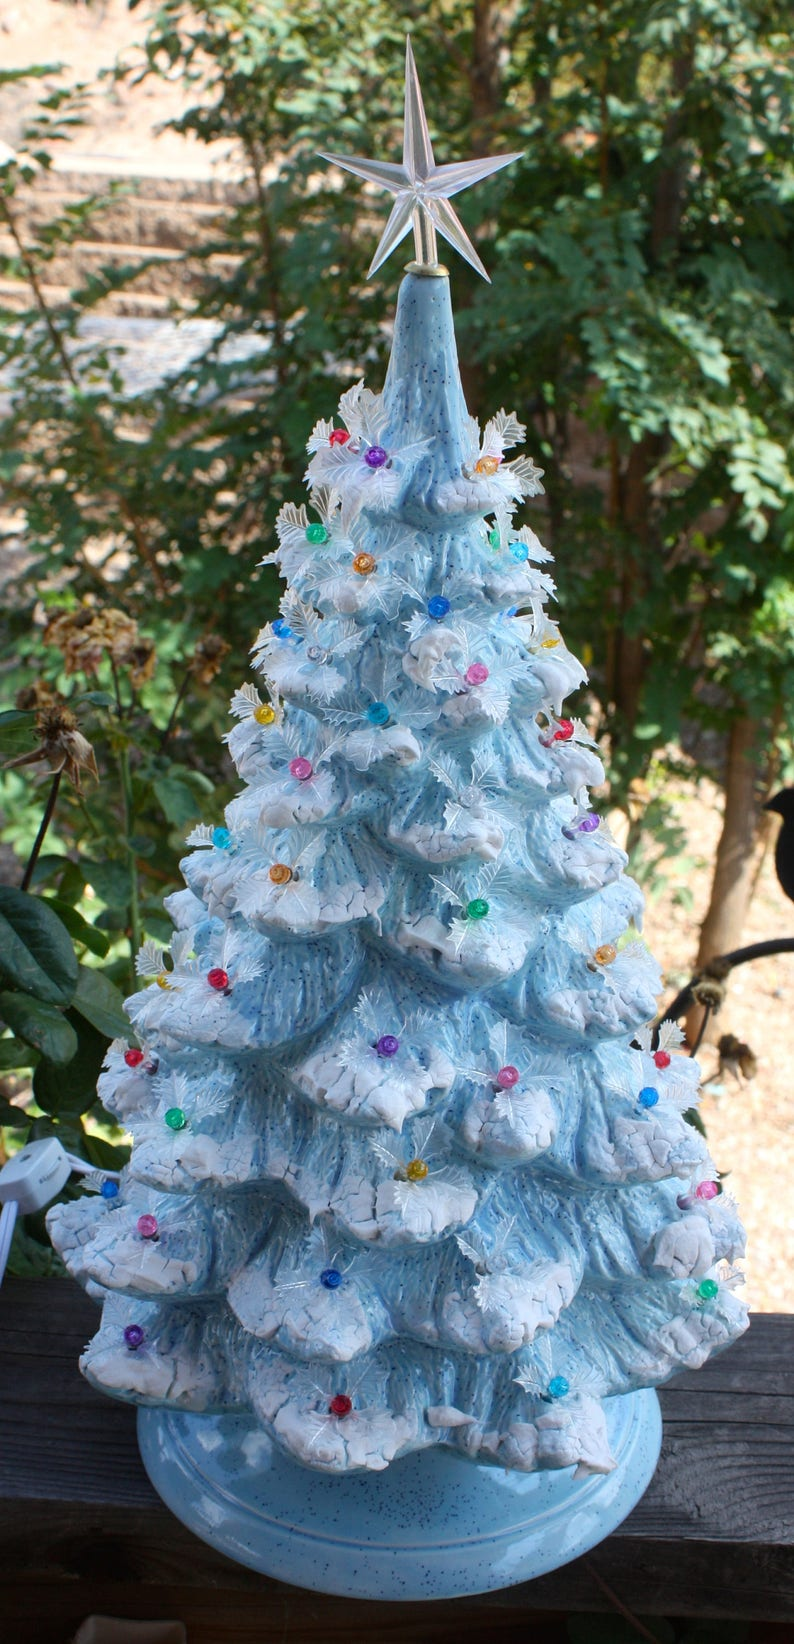 Ceramic Christmas Tree As Seen On Martha Stewart 19 Lighted Blue With Snow And Icicle Holly Like Grandma Mom S Vintage Mold Blank 1904